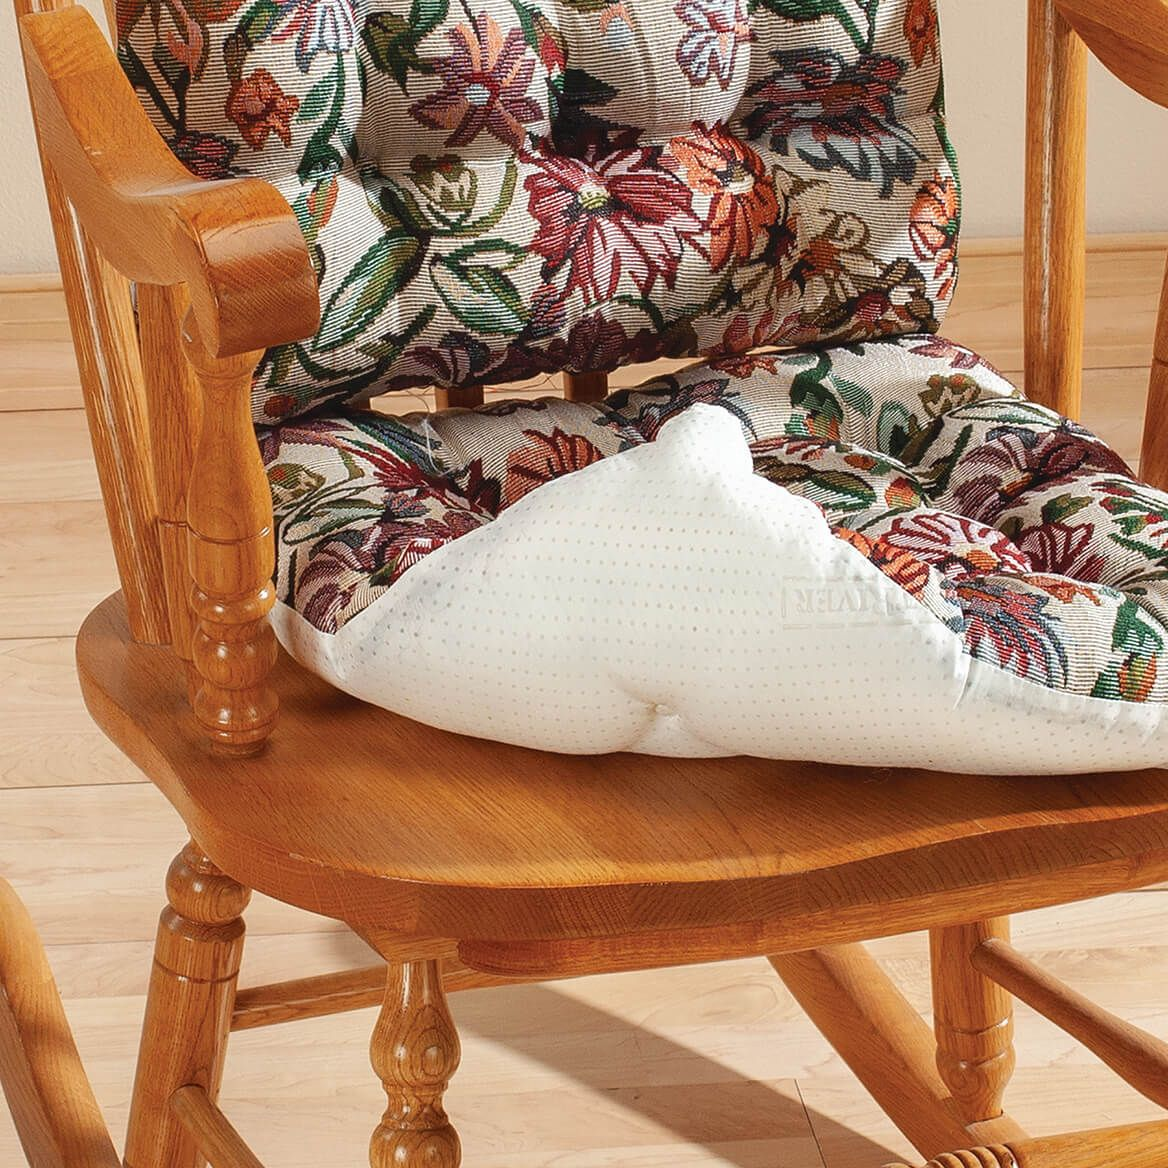 Tapestry Rocker Pads with Gripper Back, Set of 2-372263